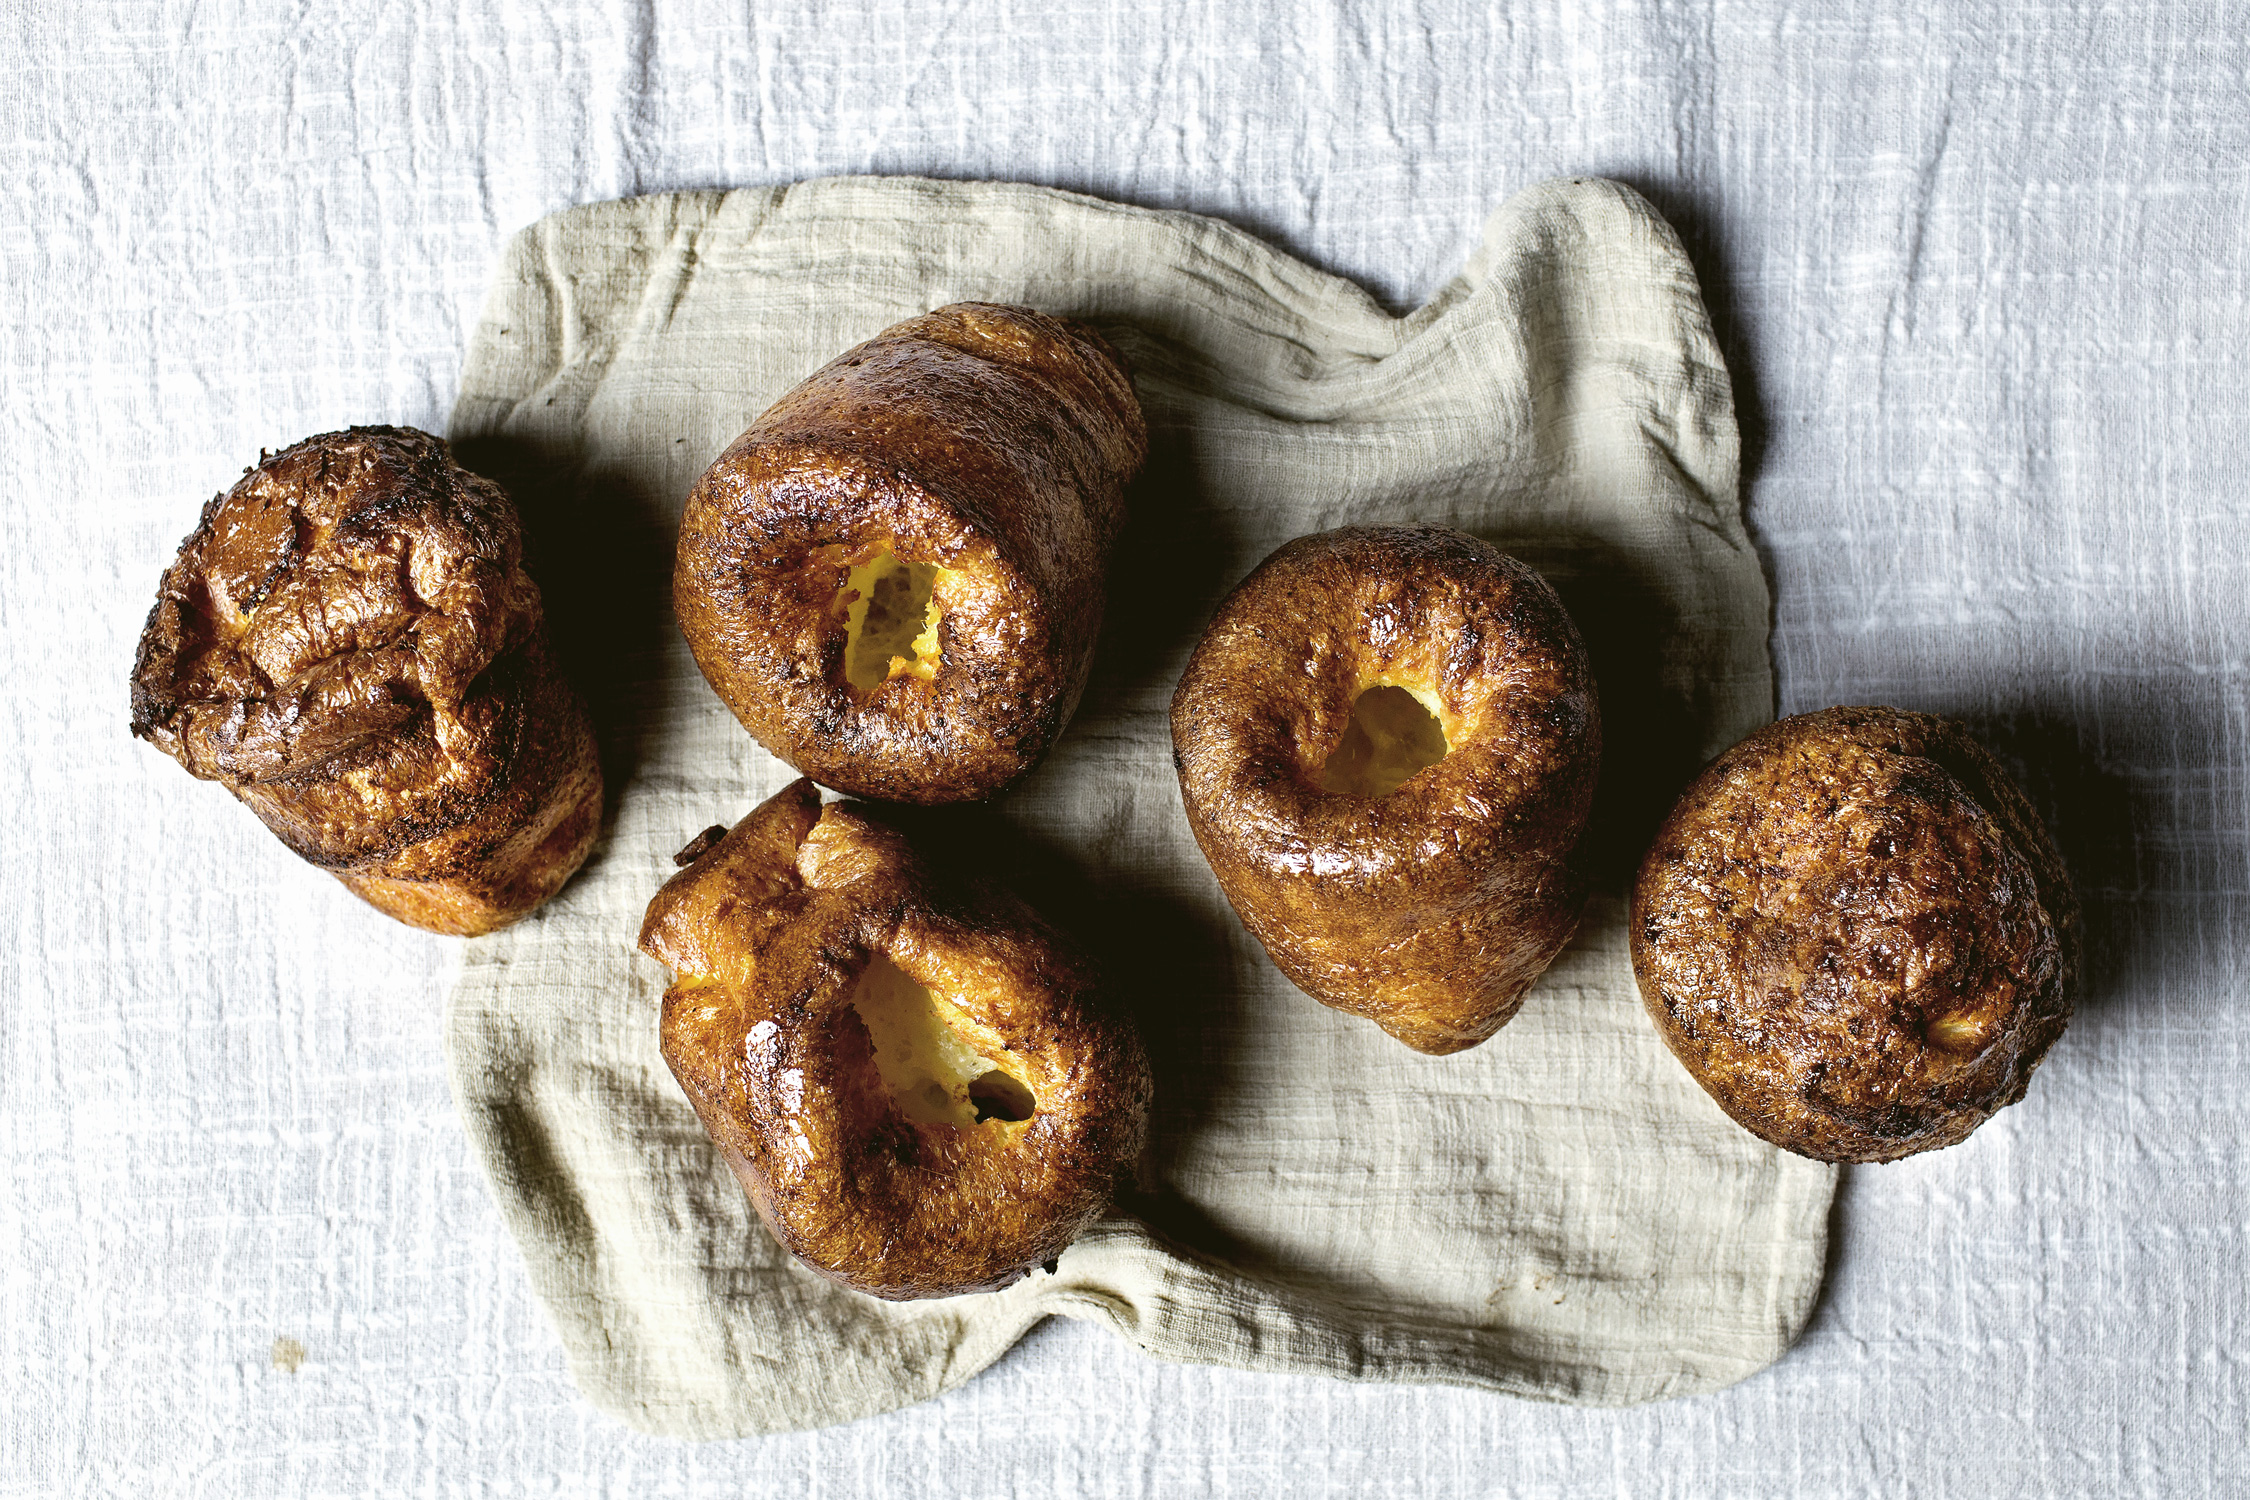 A BETTER POPOVER/YORKSHIRE PUDDING RECIPE